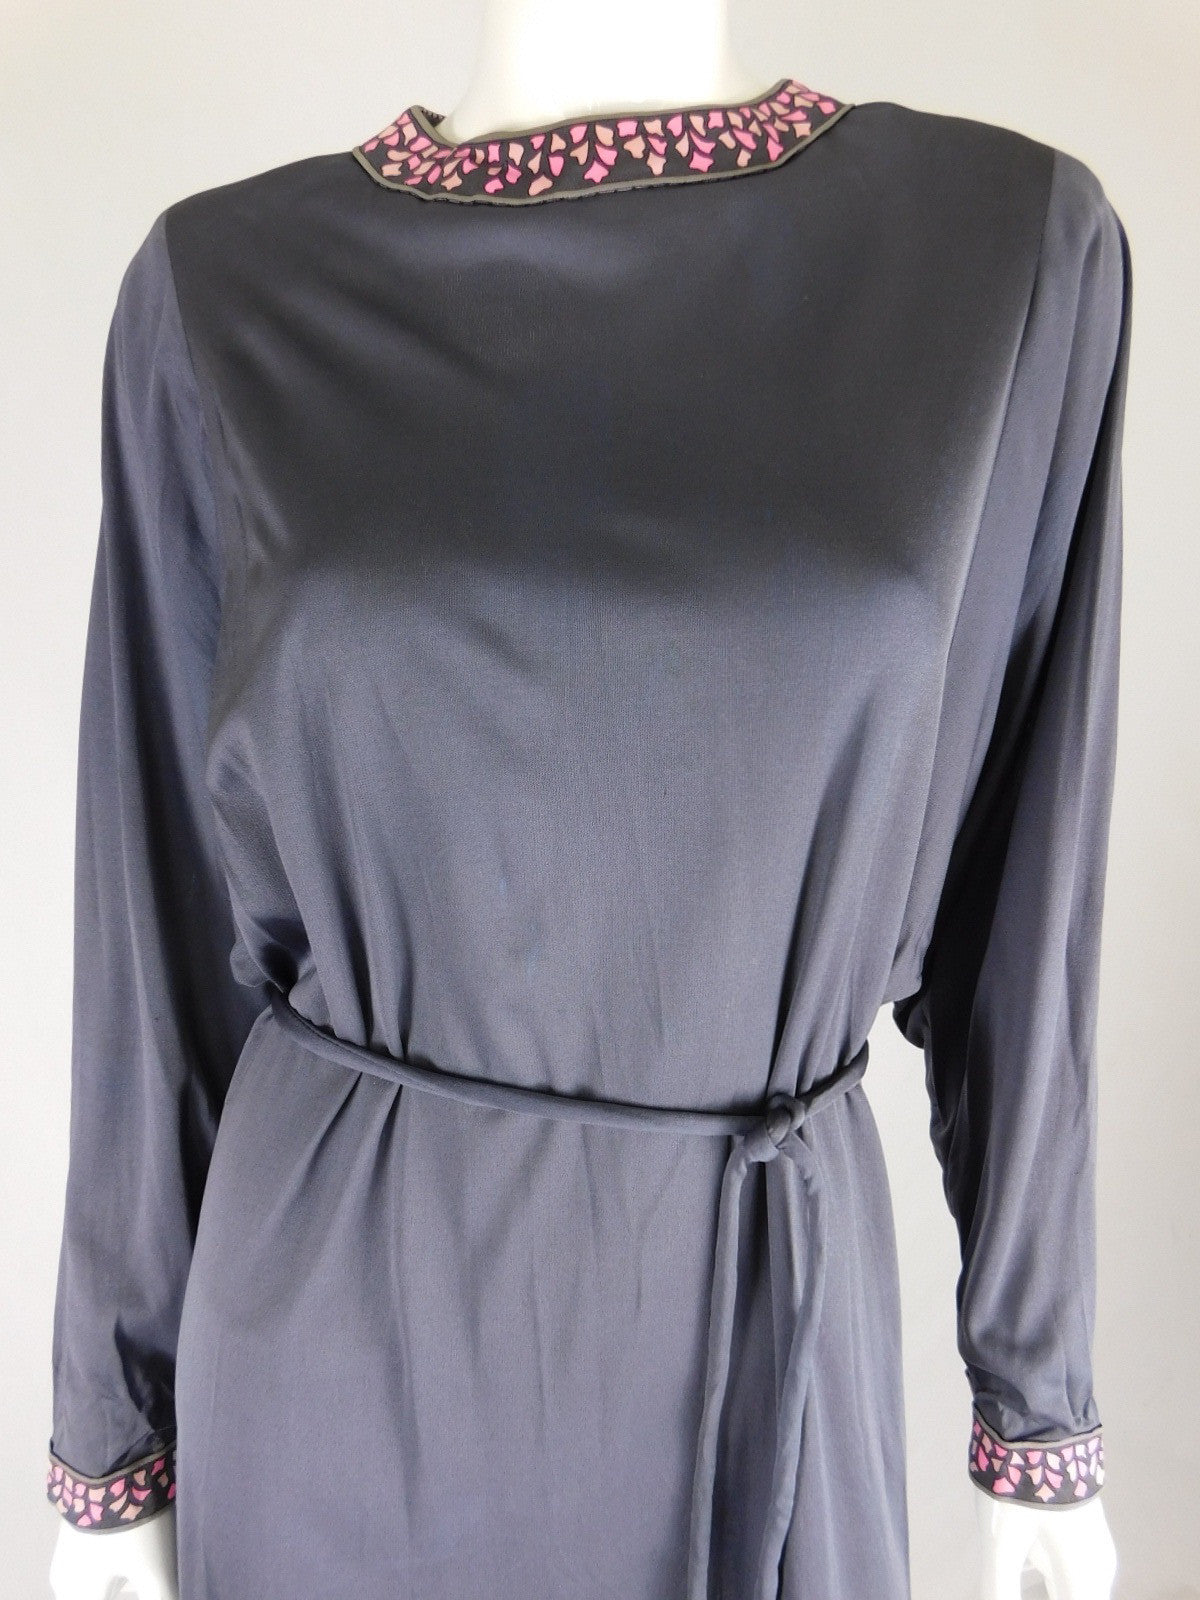 Averardo Bessi 60s Silk Grey Floral Trim Belted Dress, Size 10